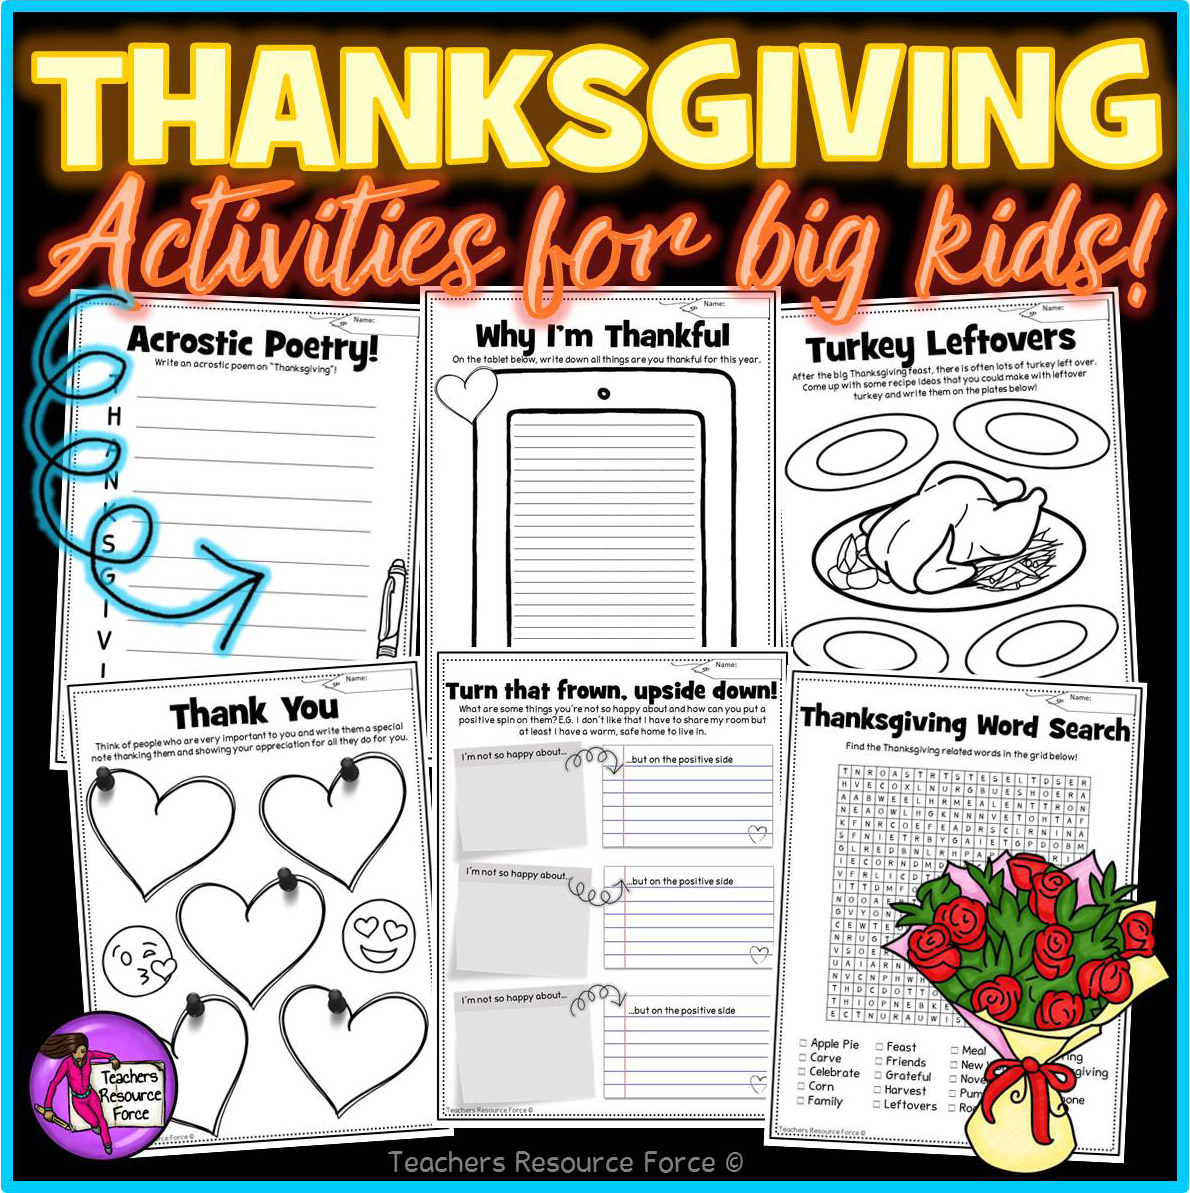 Thanksgiving Activities For Teens